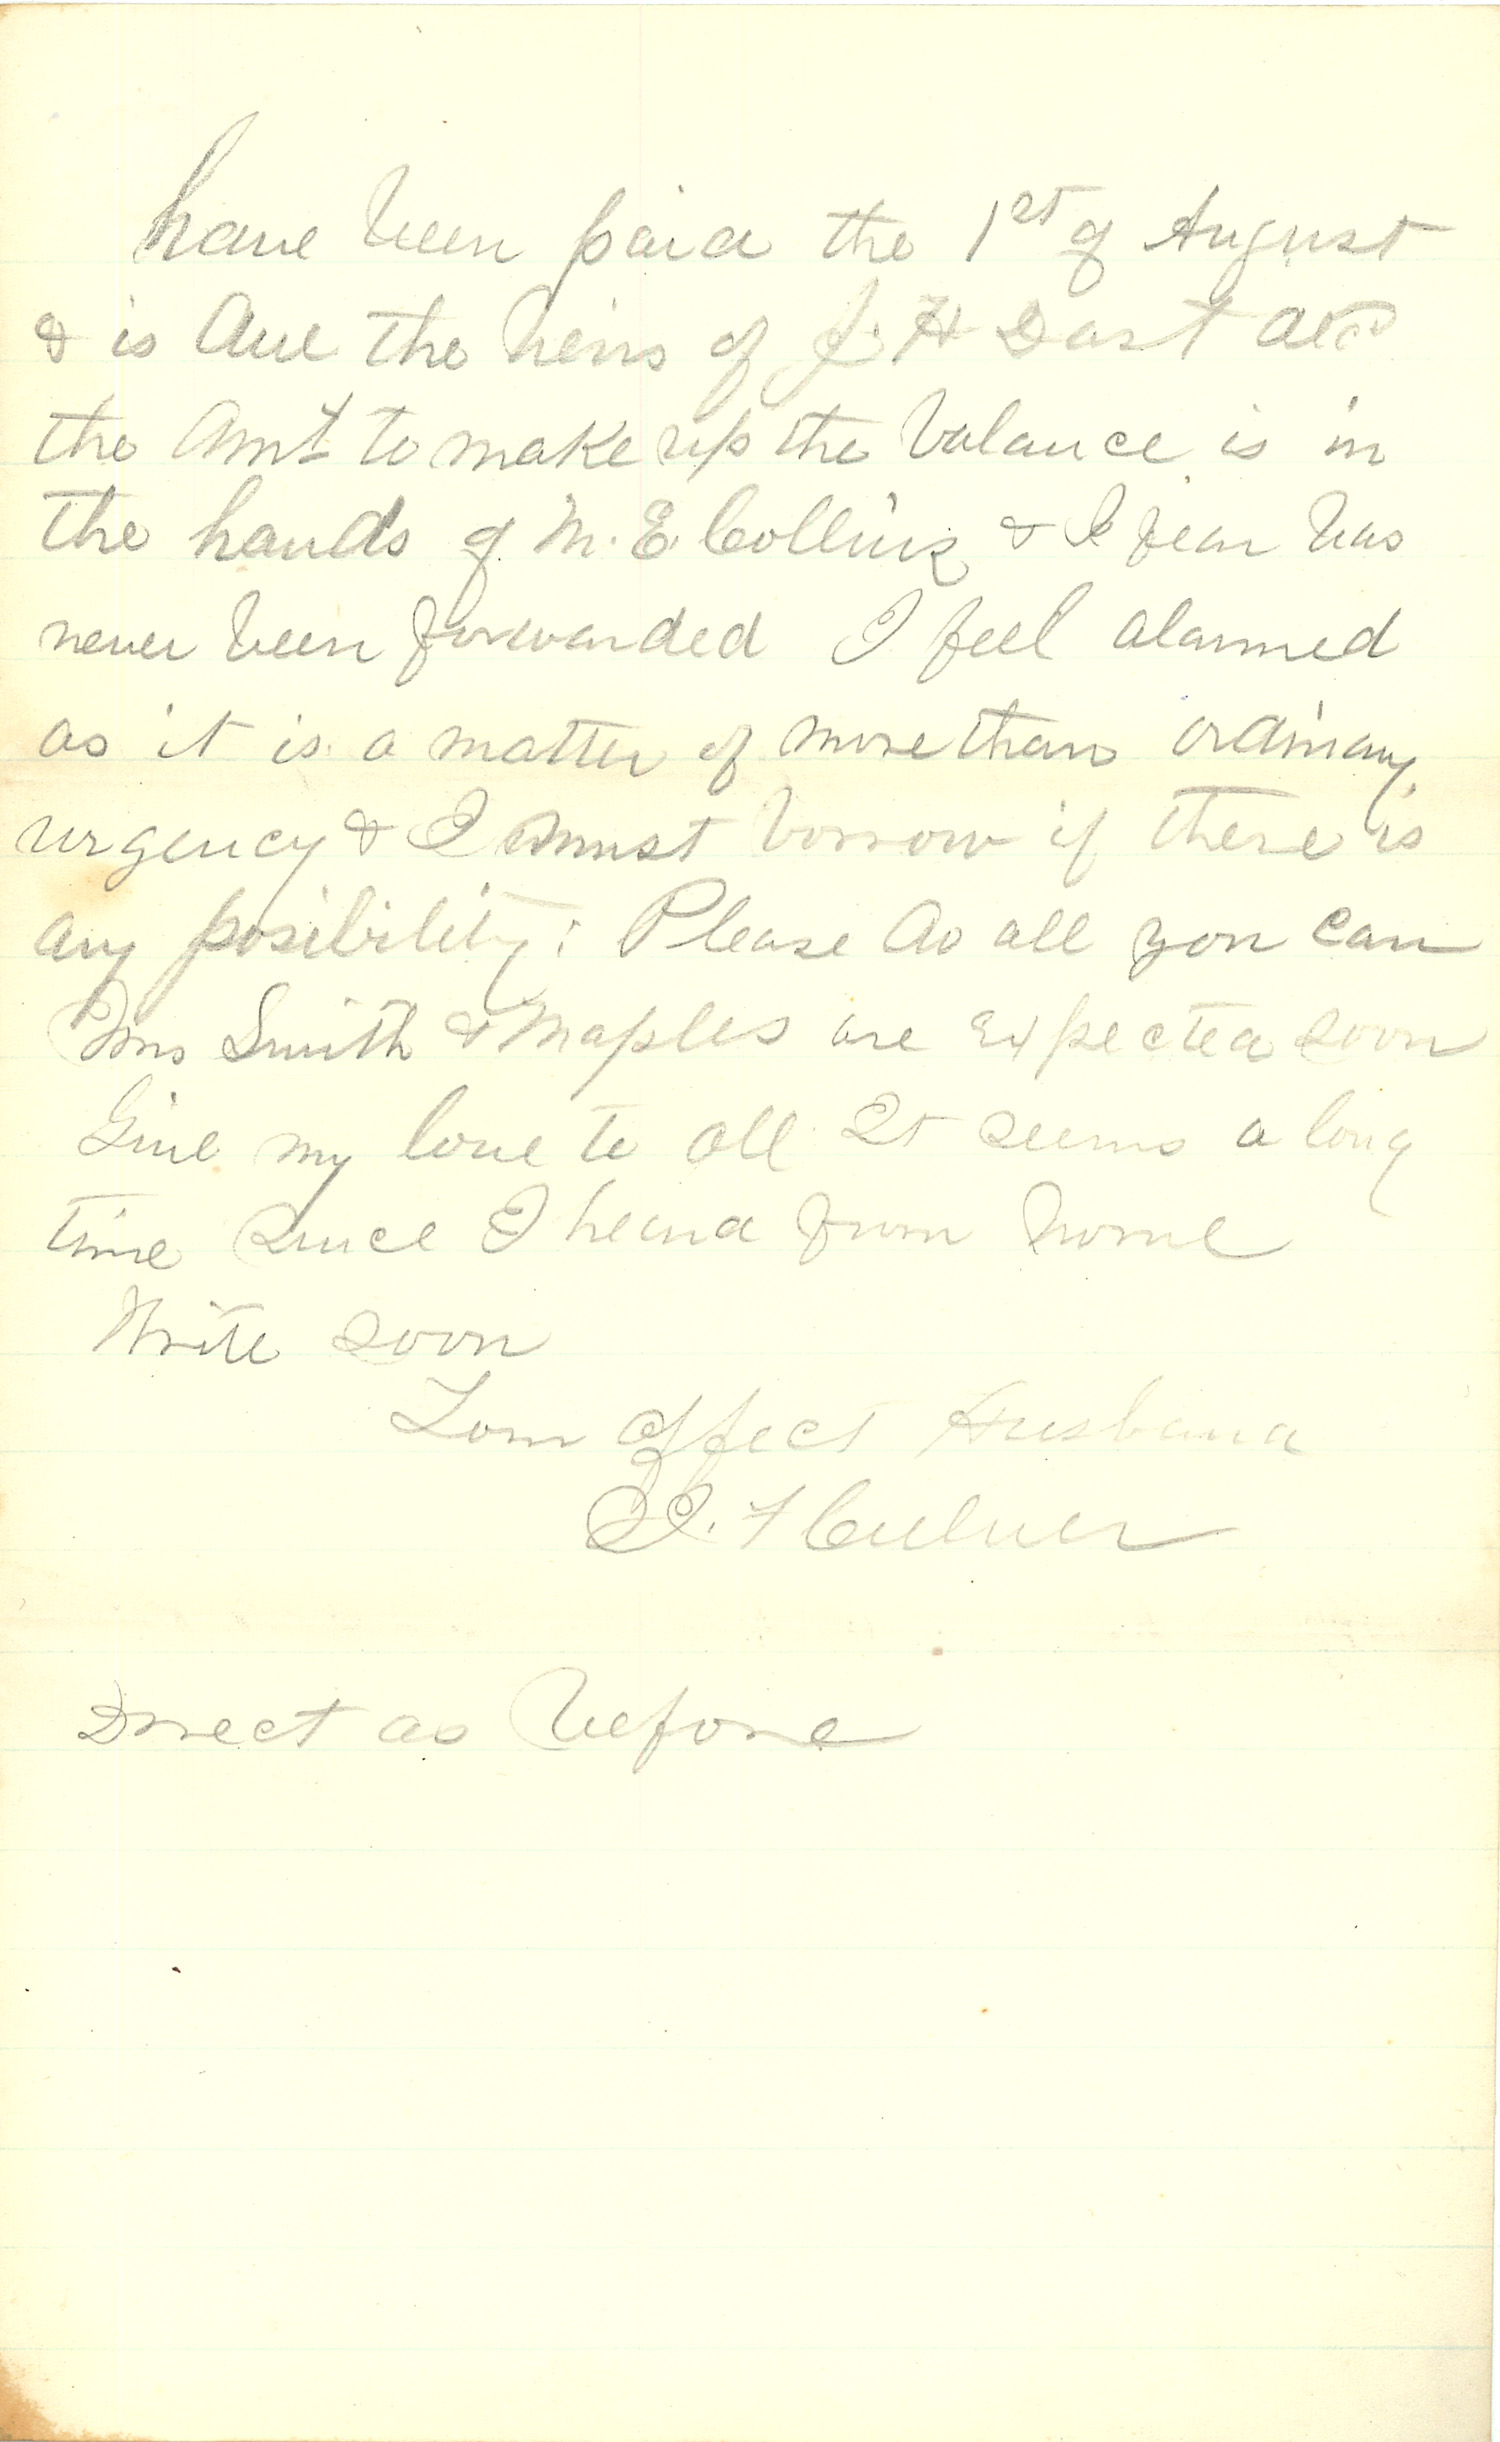 Joseph Culver Letter, December 22, 1862, Page 3